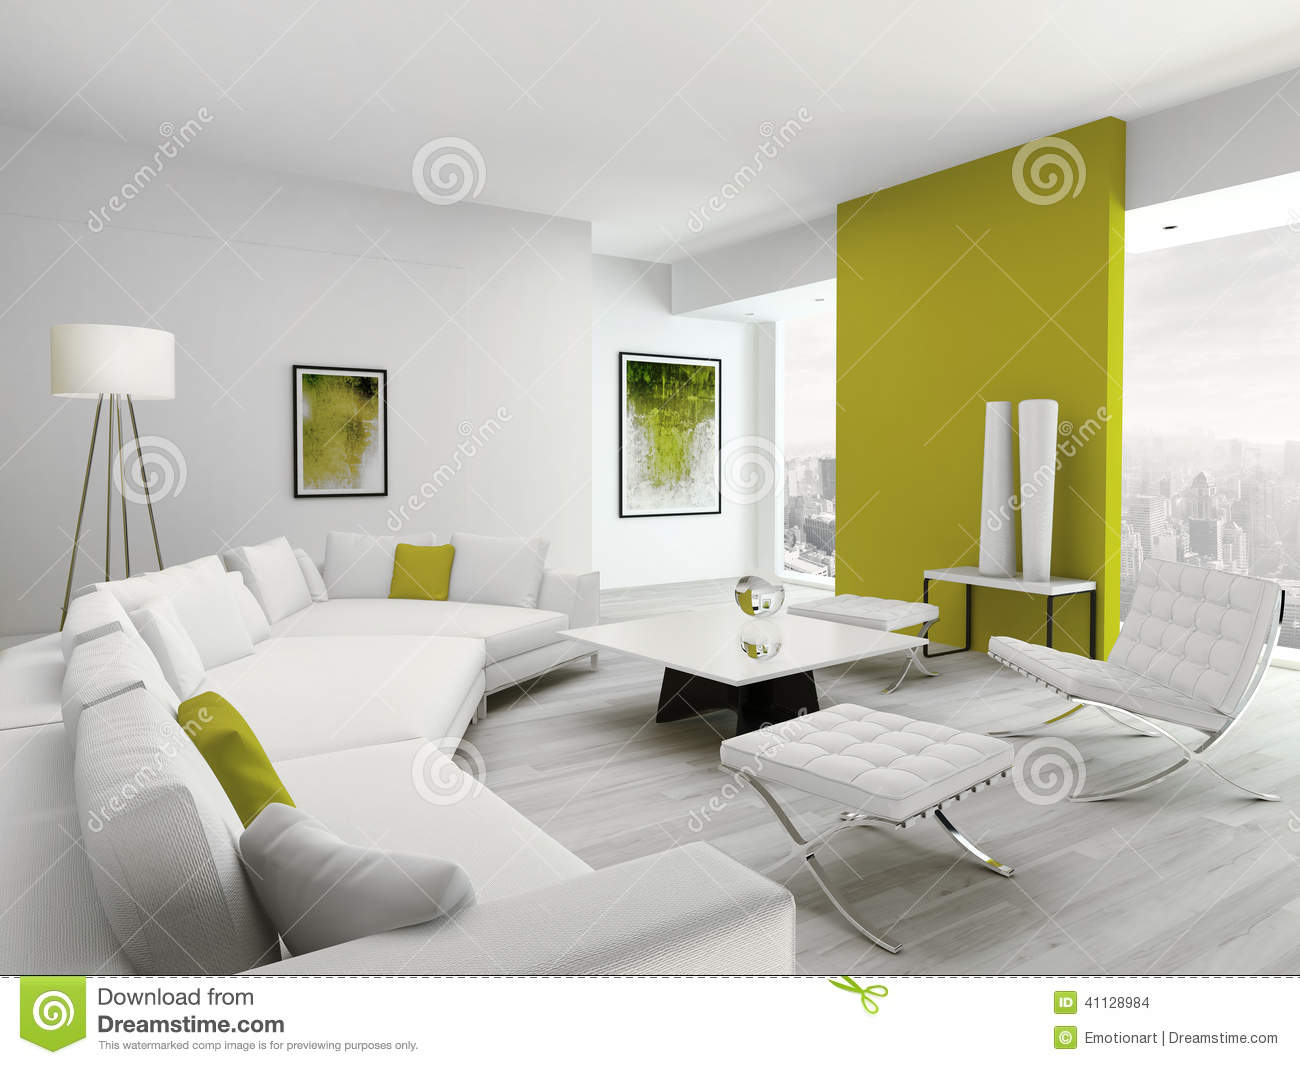 salon vert et par blanc color moderne int rieur. Black Bedroom Furniture Sets. Home Design Ideas